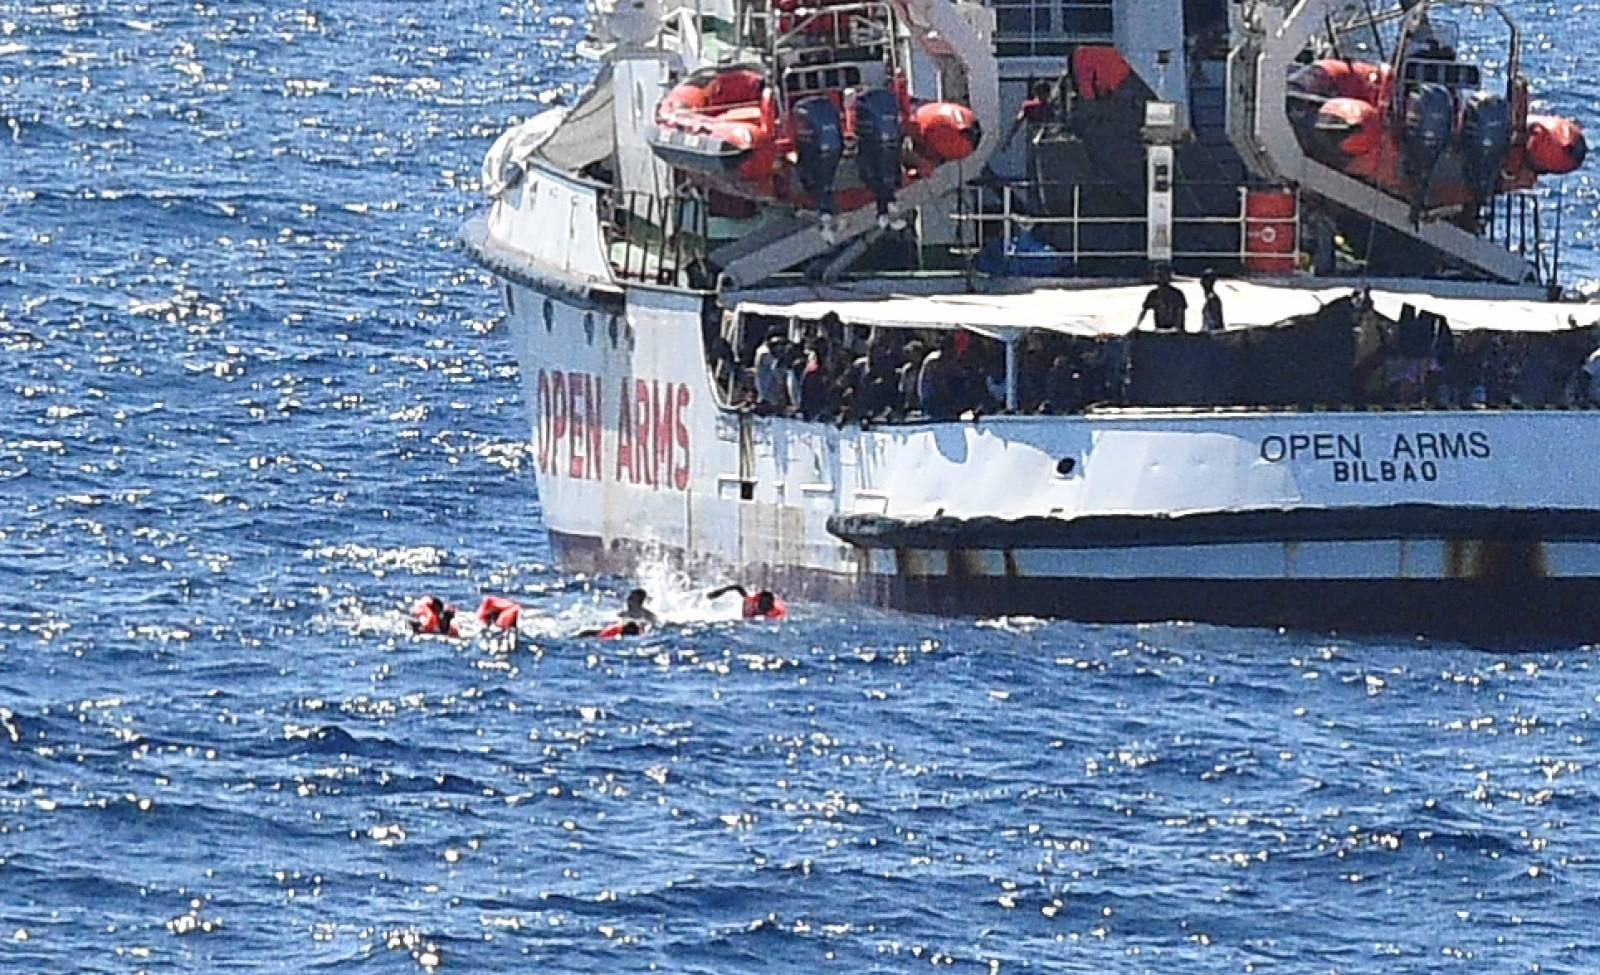 Migrants jump off the Spanish rescue ship Open Arms, close to the Italian shore in Lampedusa